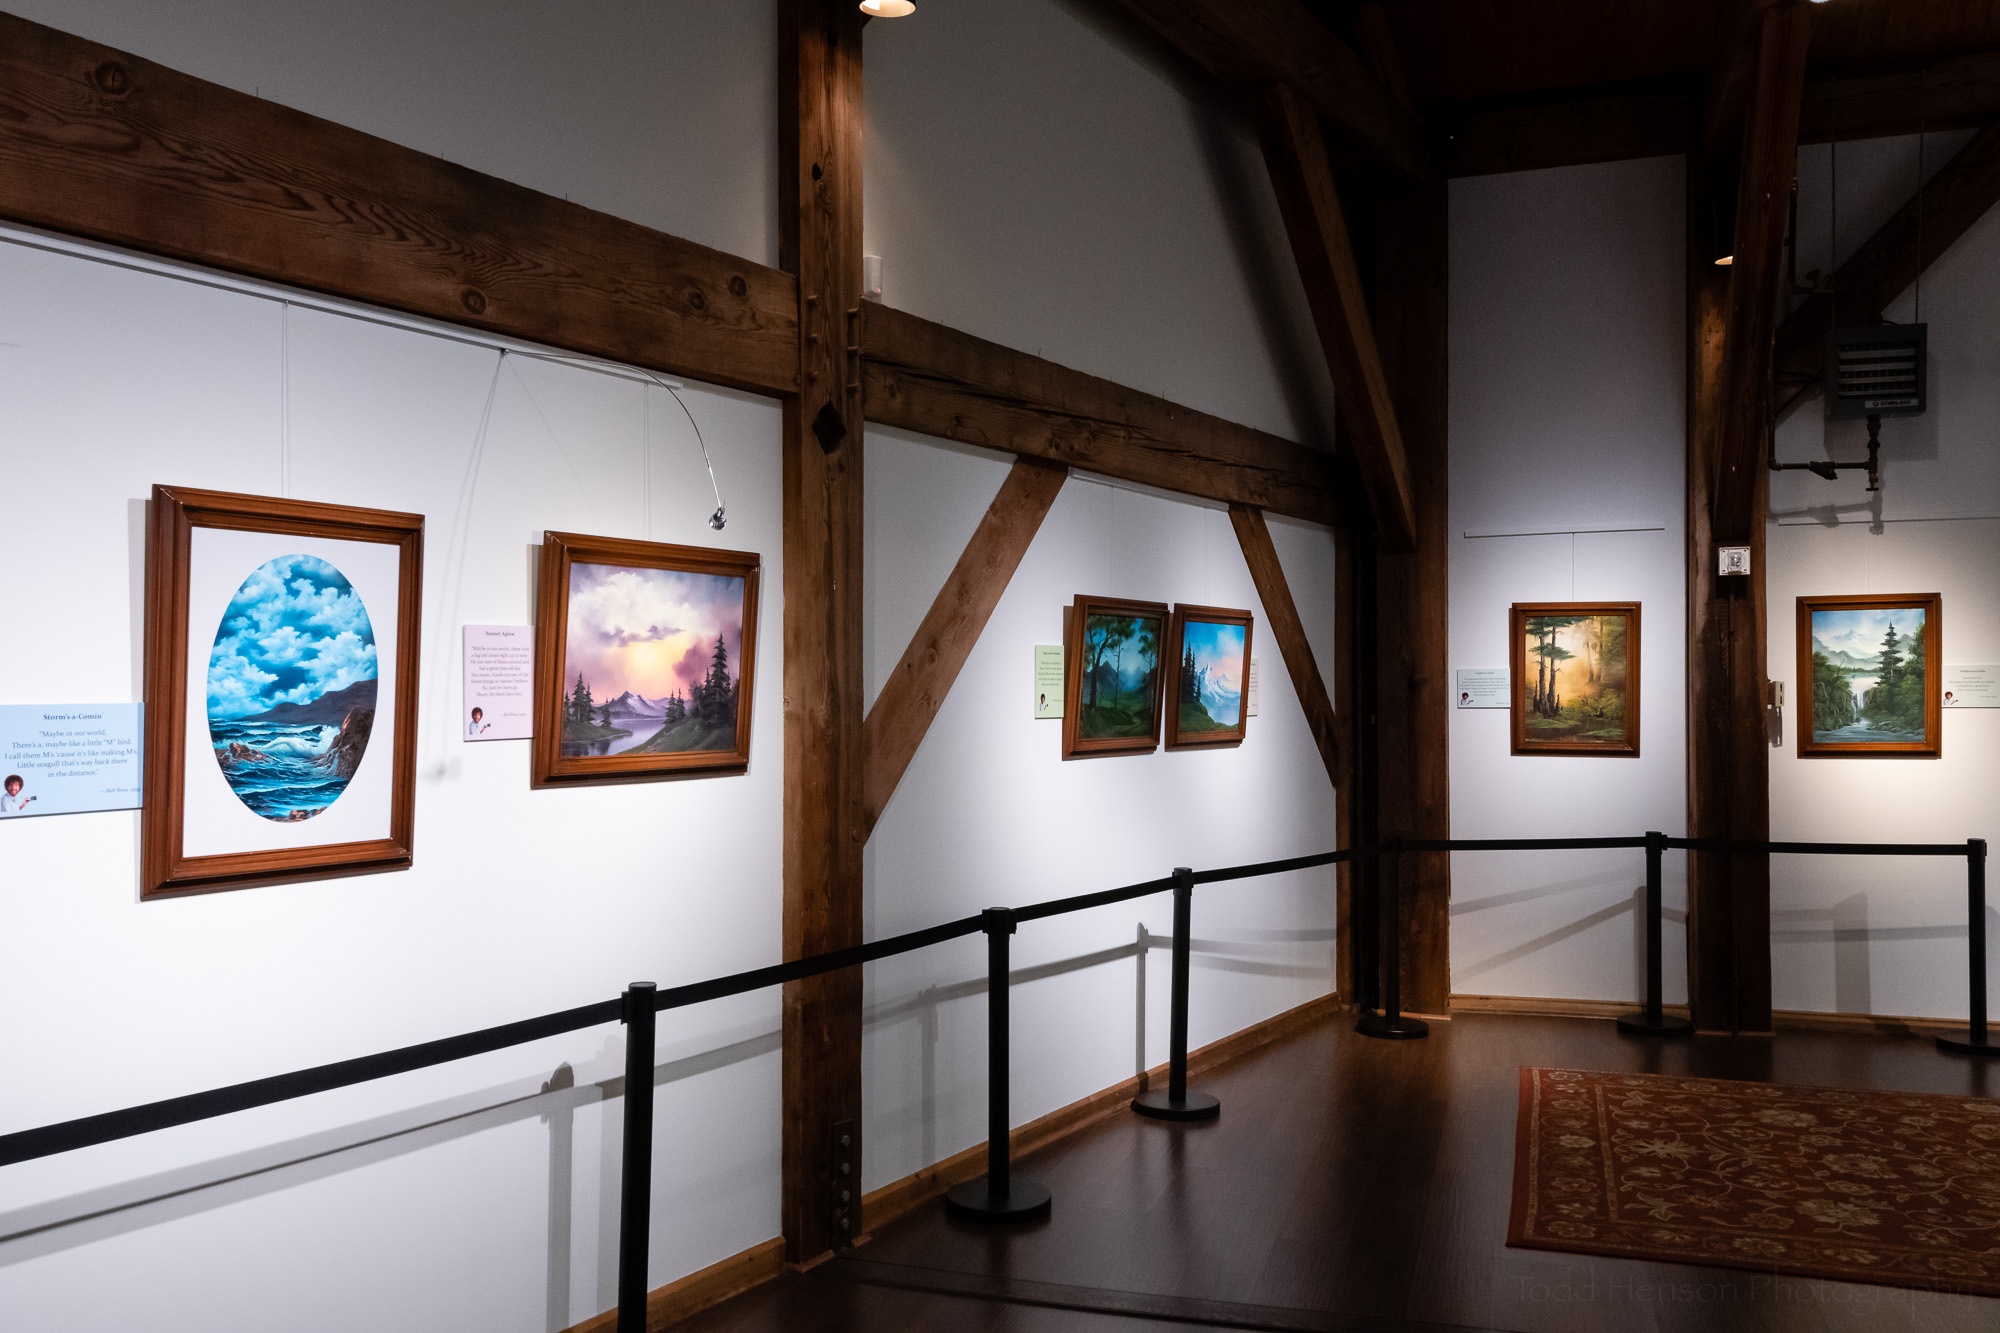 The Franklin Park Arts Center was a great location for a Bob Ross exhibit